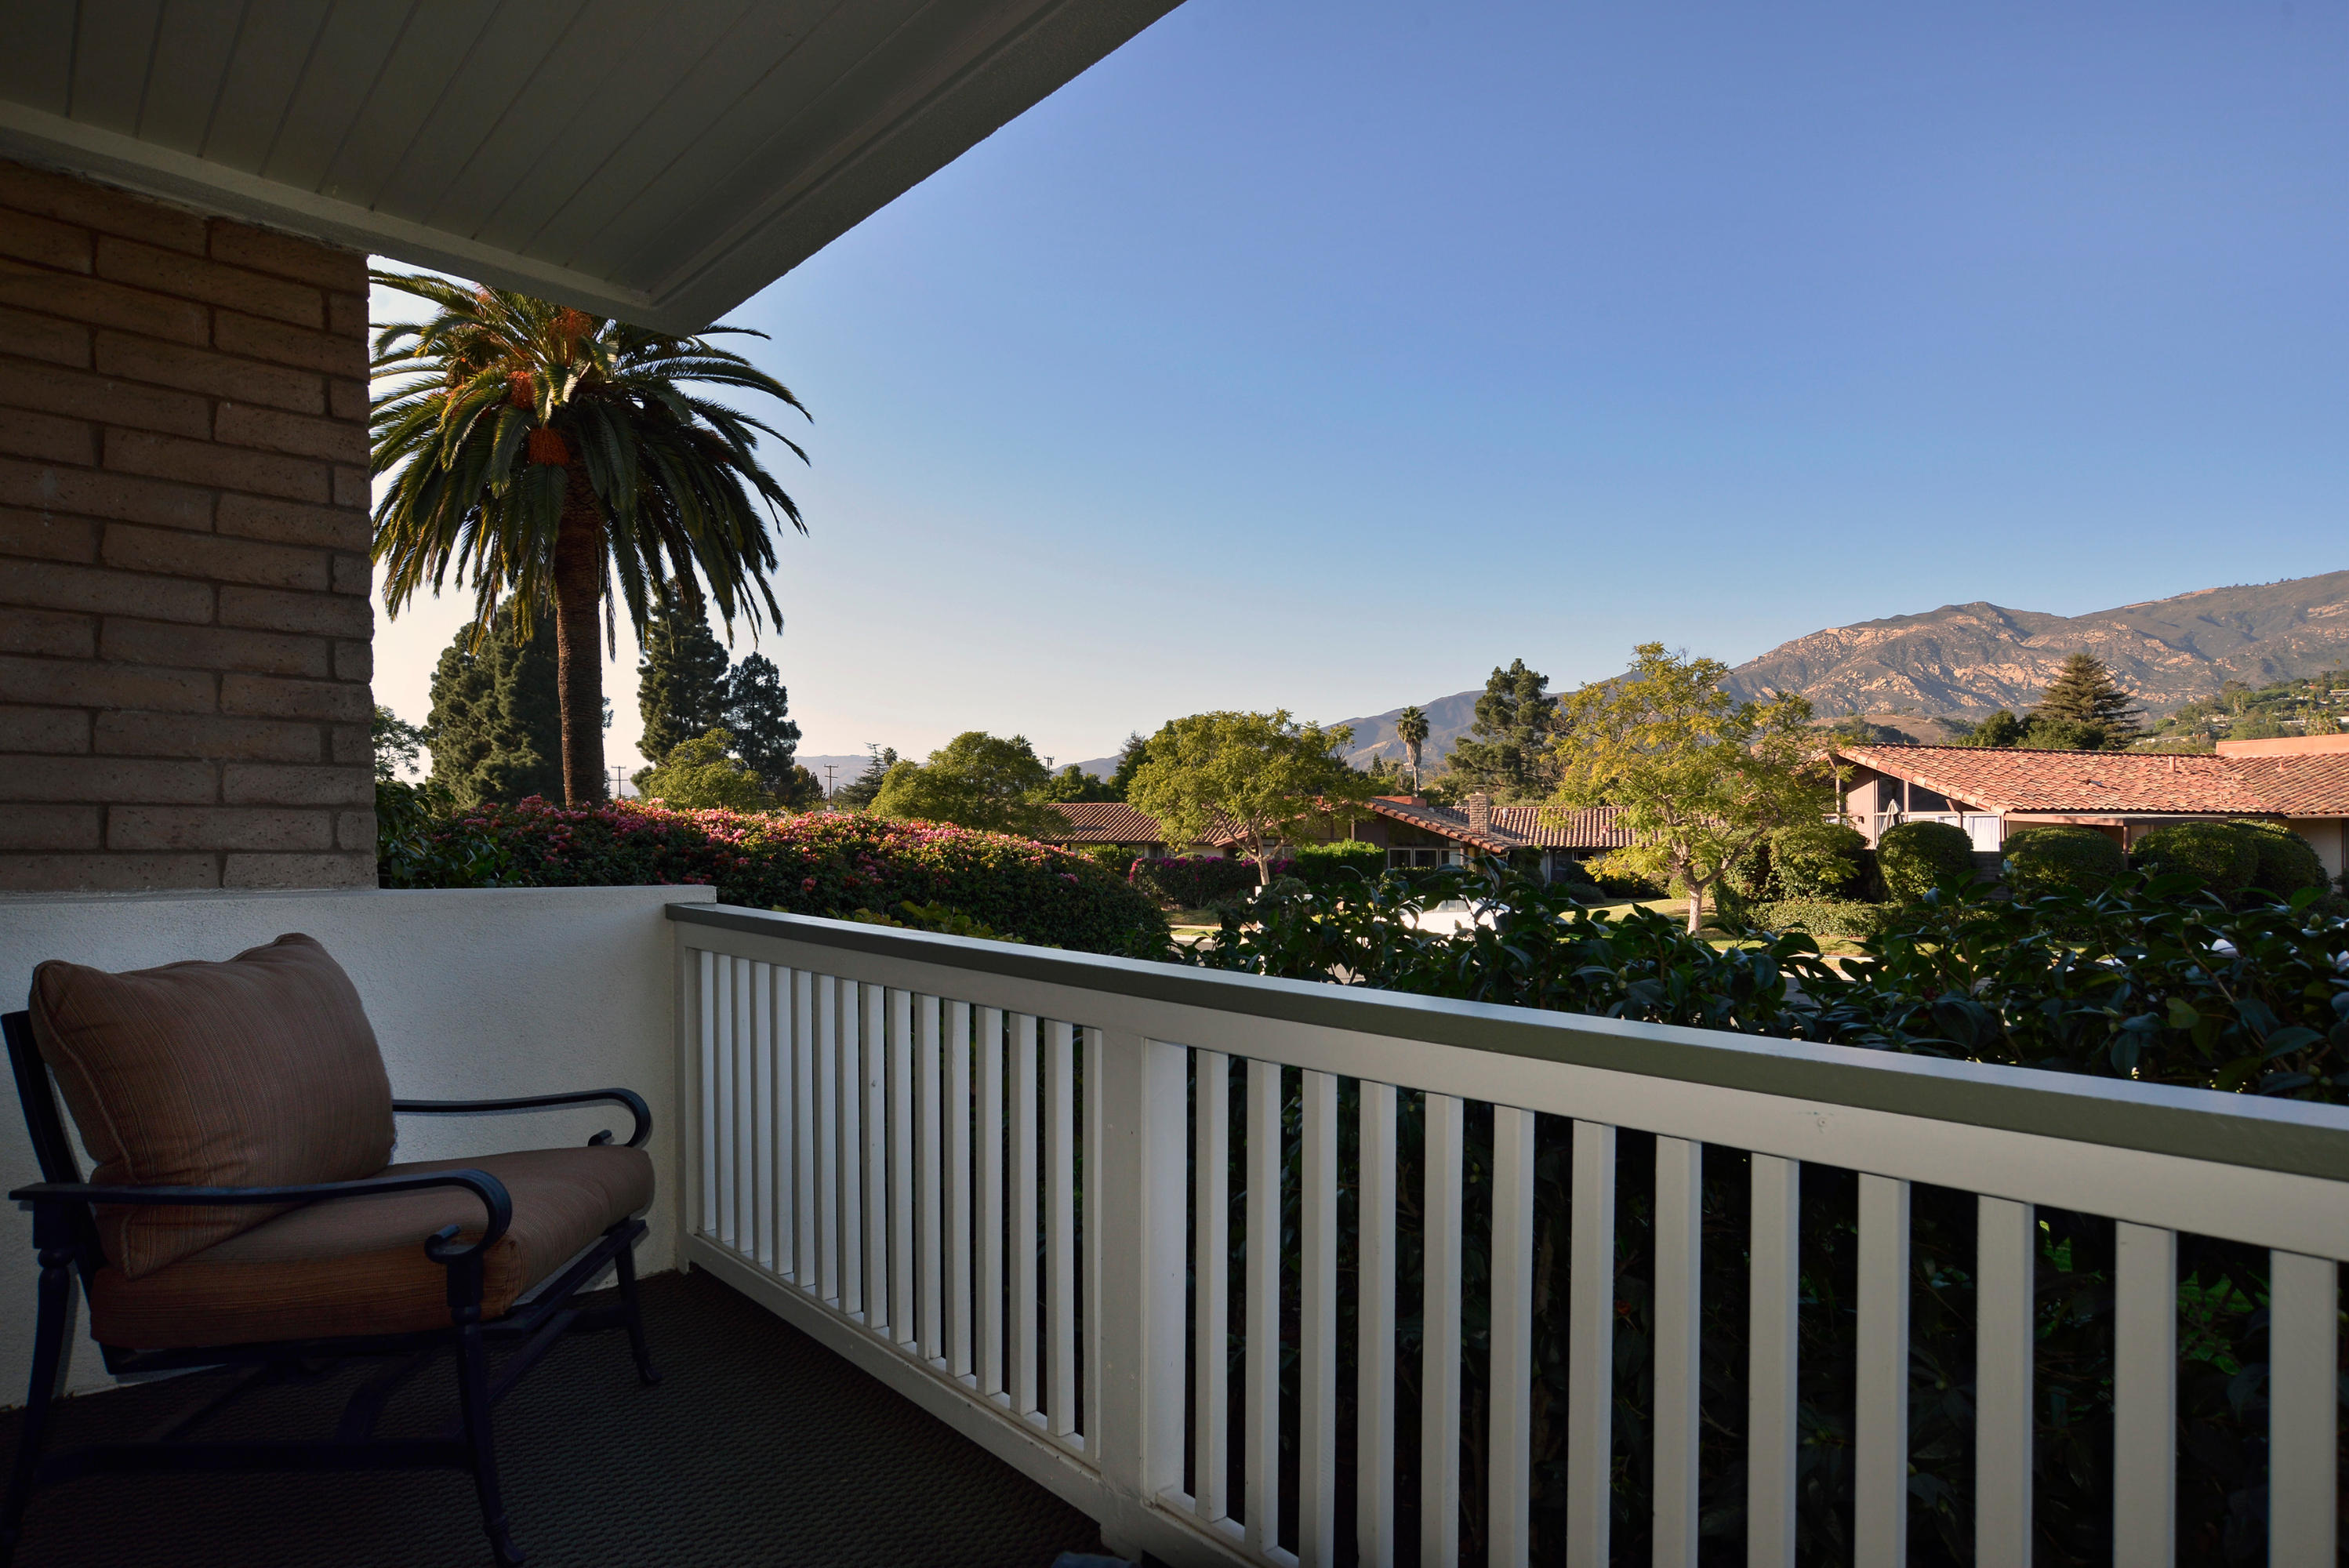 Property photo for 2805 Miradero Dr #B Santa Barbara, California 93105 - 14-3381